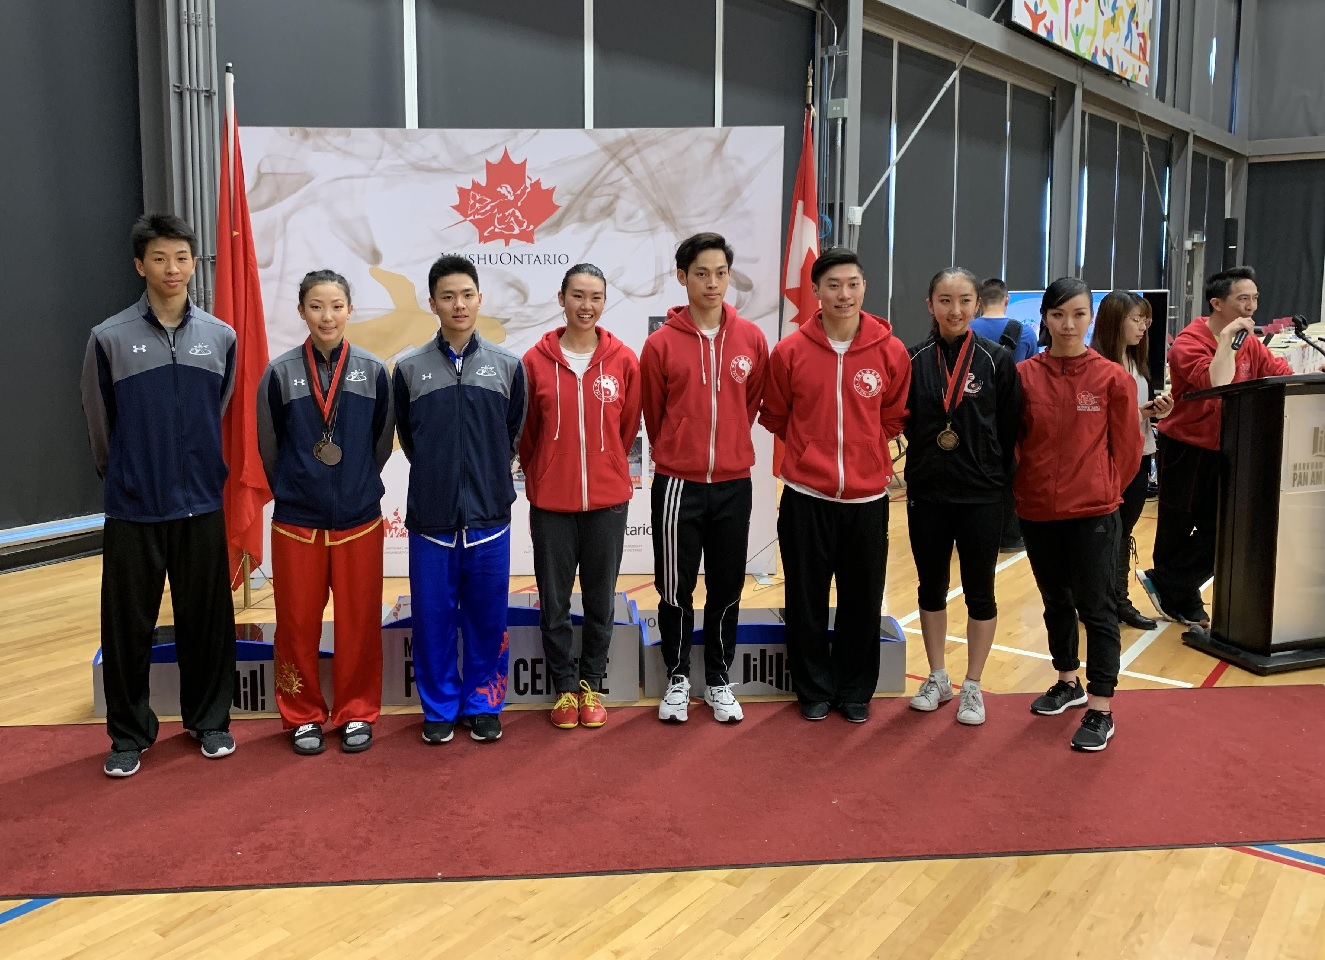 The 2019 Canadian National Wushu Team. Congrats Rex, Erica and Dylan, as well as friends from our schools across Canada!